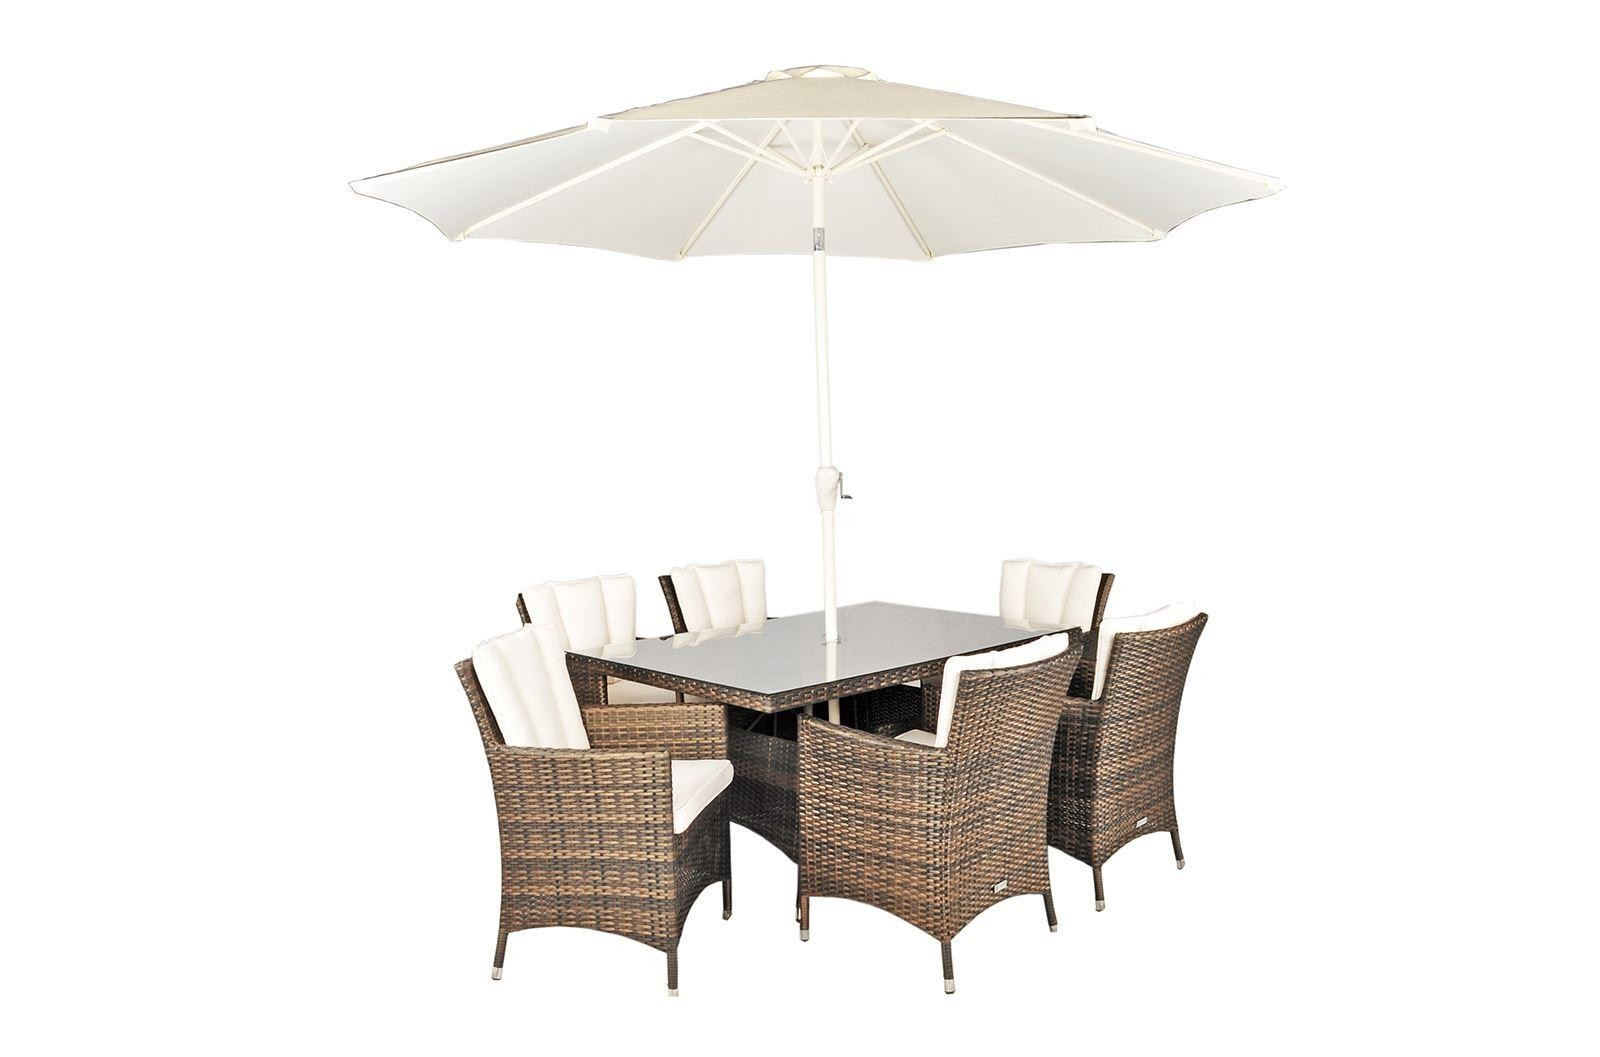 Savannah Rattan Garden Furniture [6 Seat Dining Set with Rectangular Table]